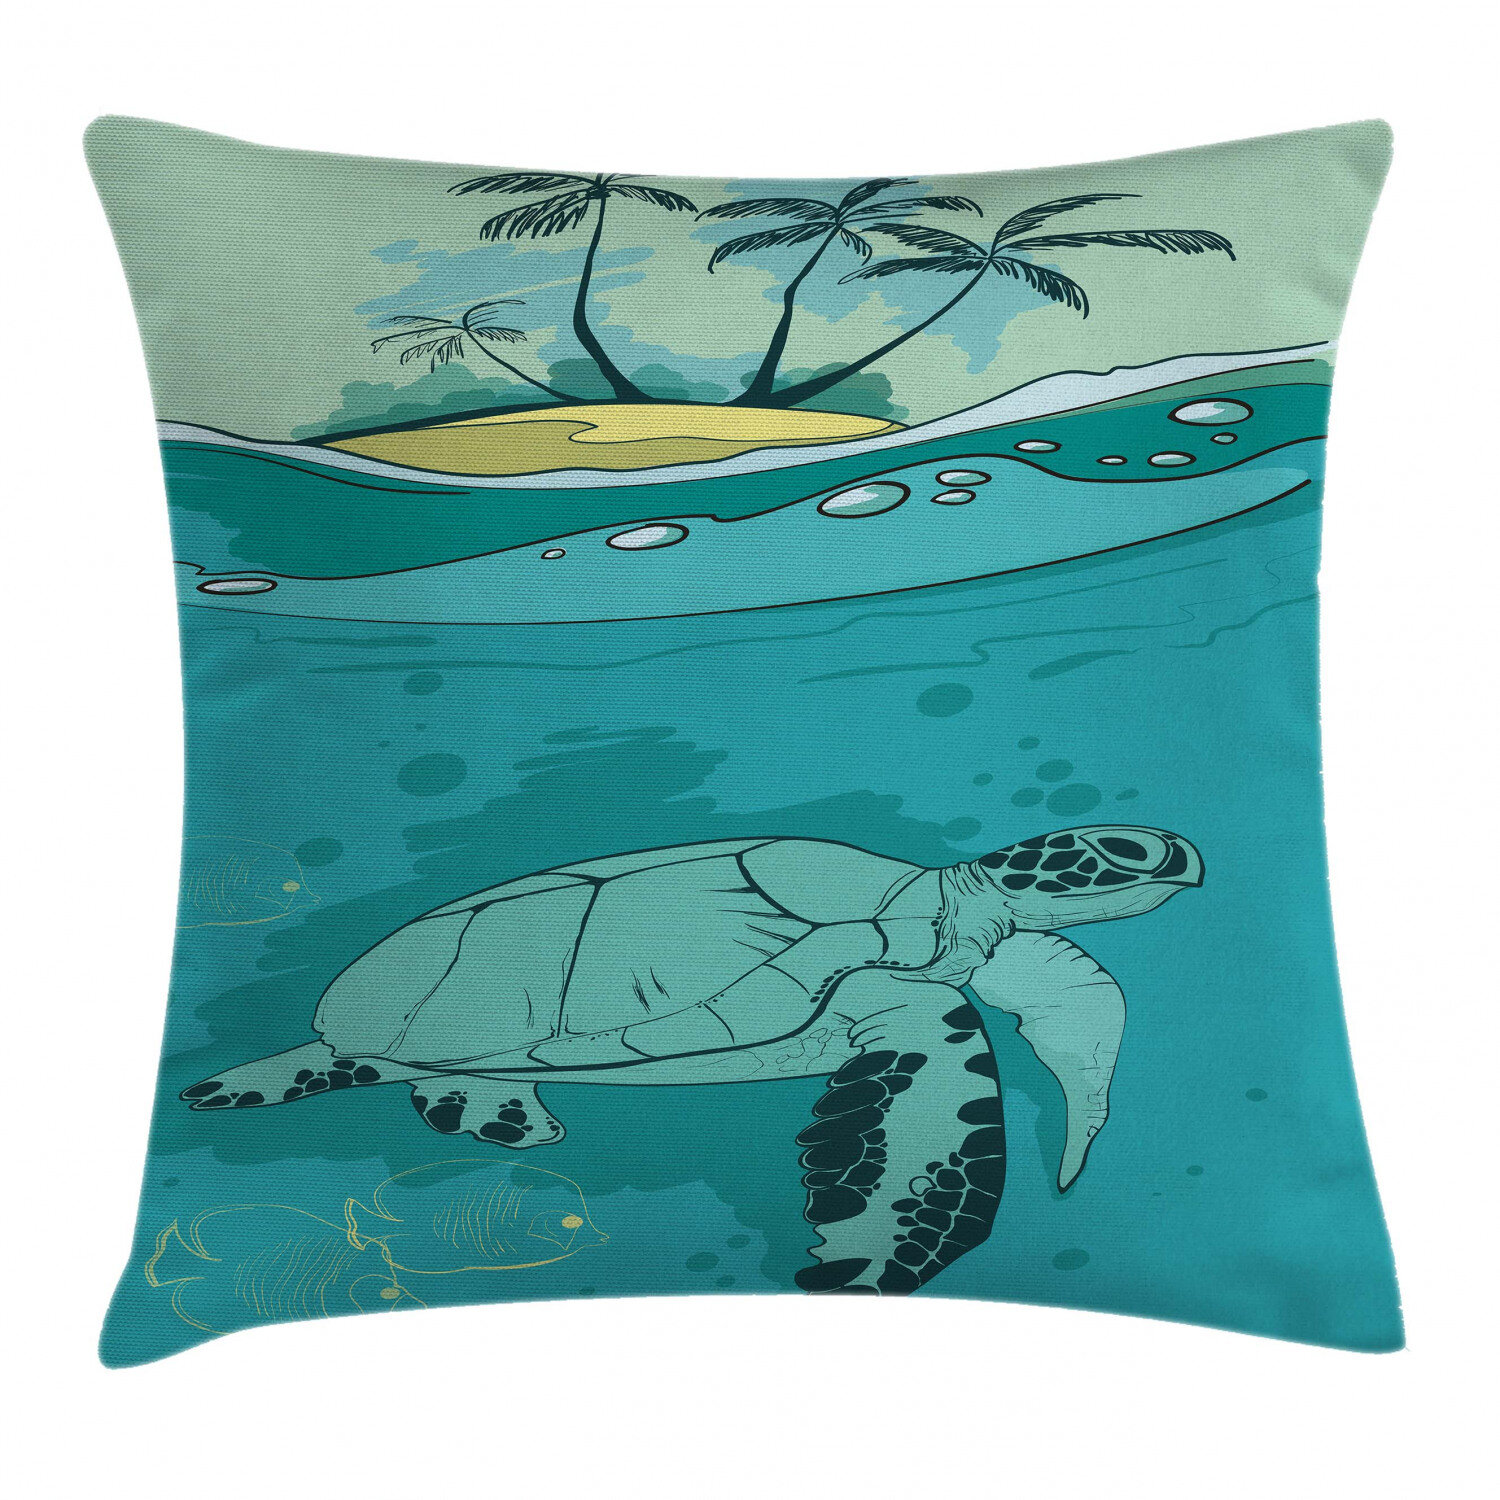 East Urban Home Sea Turtle Swimming Coral Indoor Outdoor 26 Throw Pillow Cover Wayfair